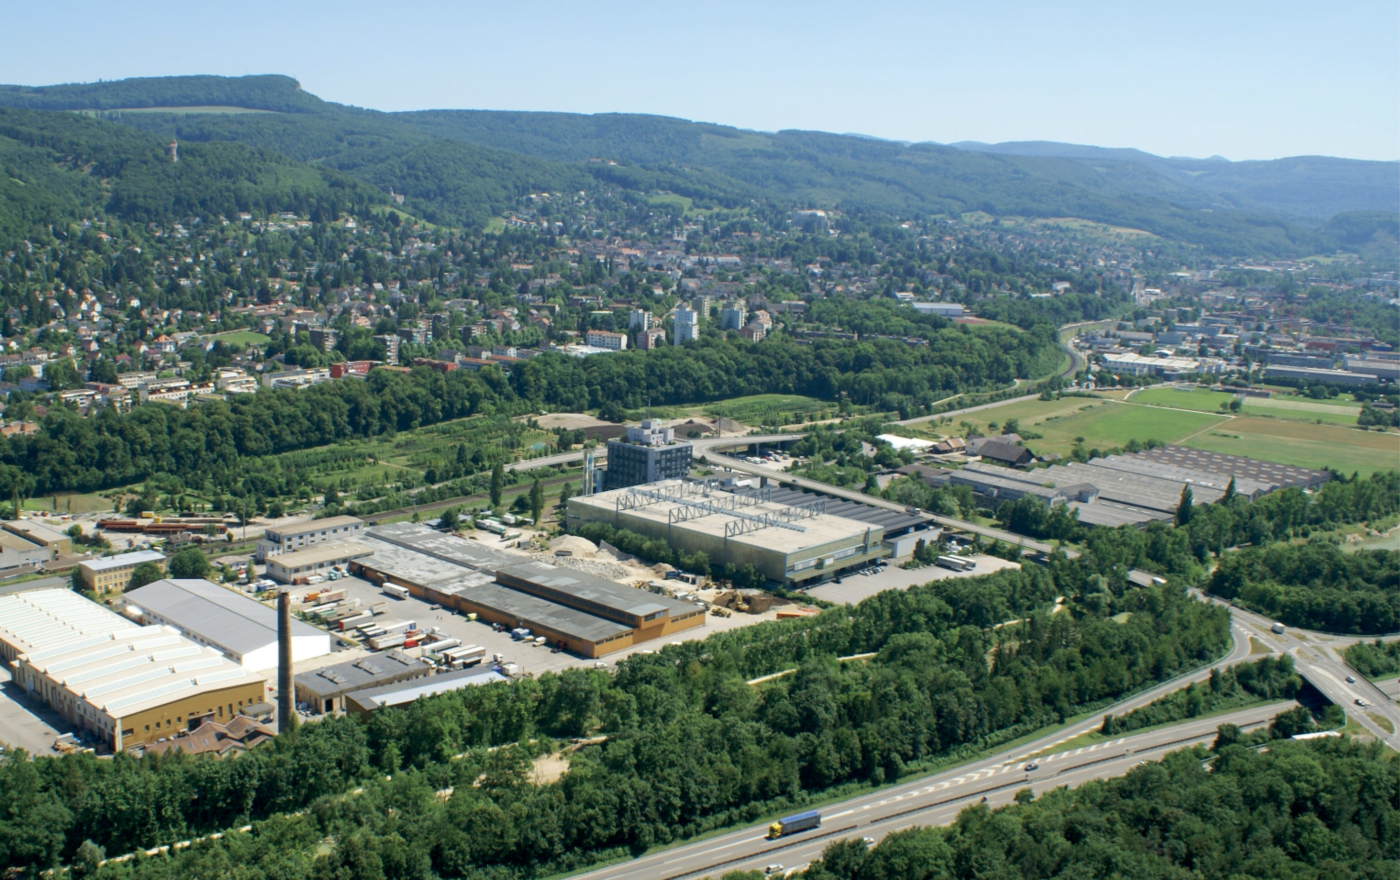 Photos for this media folder, The image (2015) shows the uptownBasel site before construction work began. In 2016 the site was bought by uptownBasel AG, which is headed by Dr Thomas Staehelin. Site developer Hans-Jörg Fankhauser was commissioned with the overall development of the site.  © Copyright Fankhauser Arealentwicklungen Gesamtplanungen  Digitale Medienmappe «Laying the uptownBasel foundation stone: a quantum leap for the industry», uptownBasel